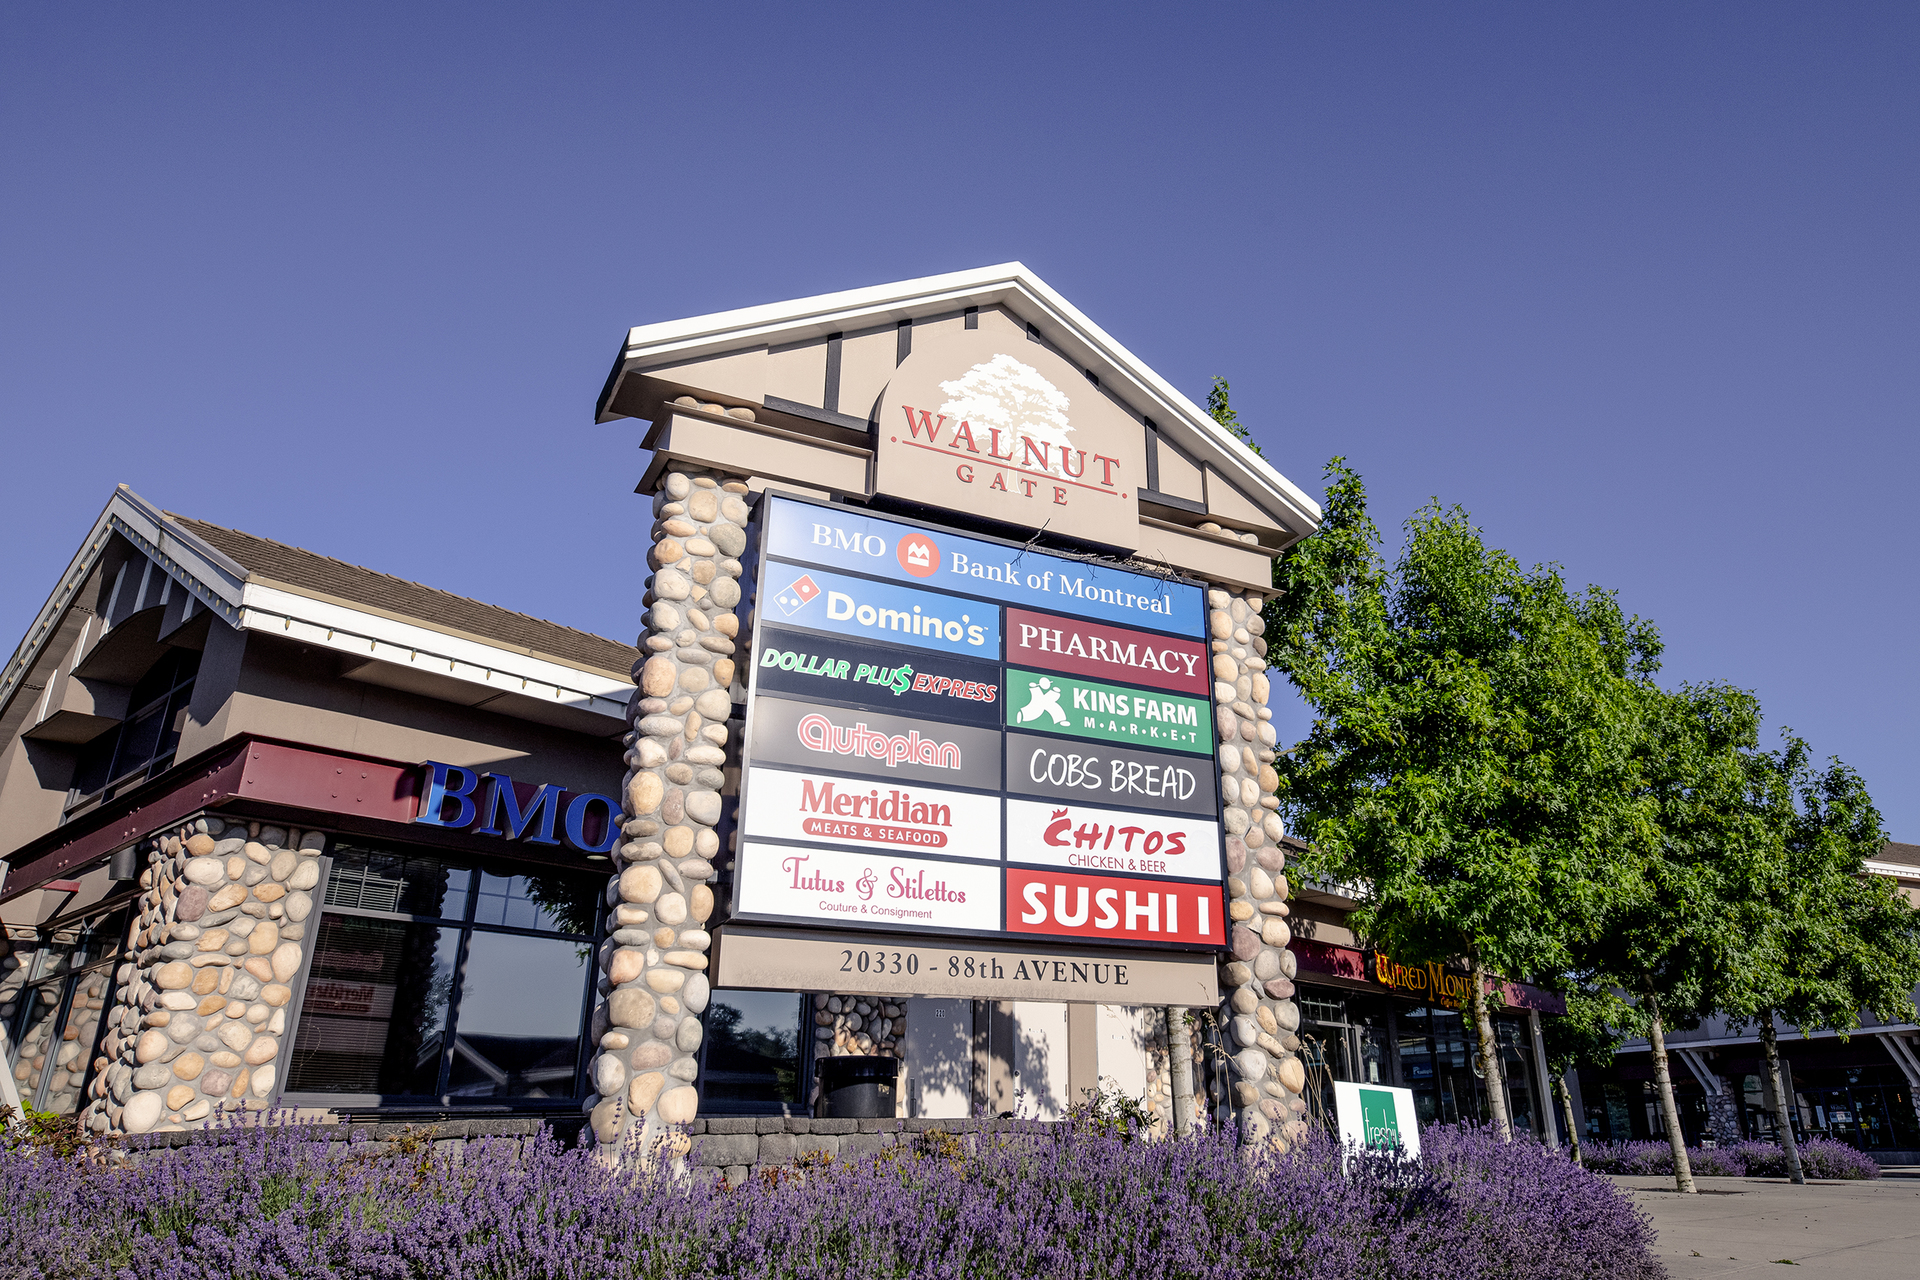 location_002 at 20416 90 Crescent, Walnut Grove, Langley